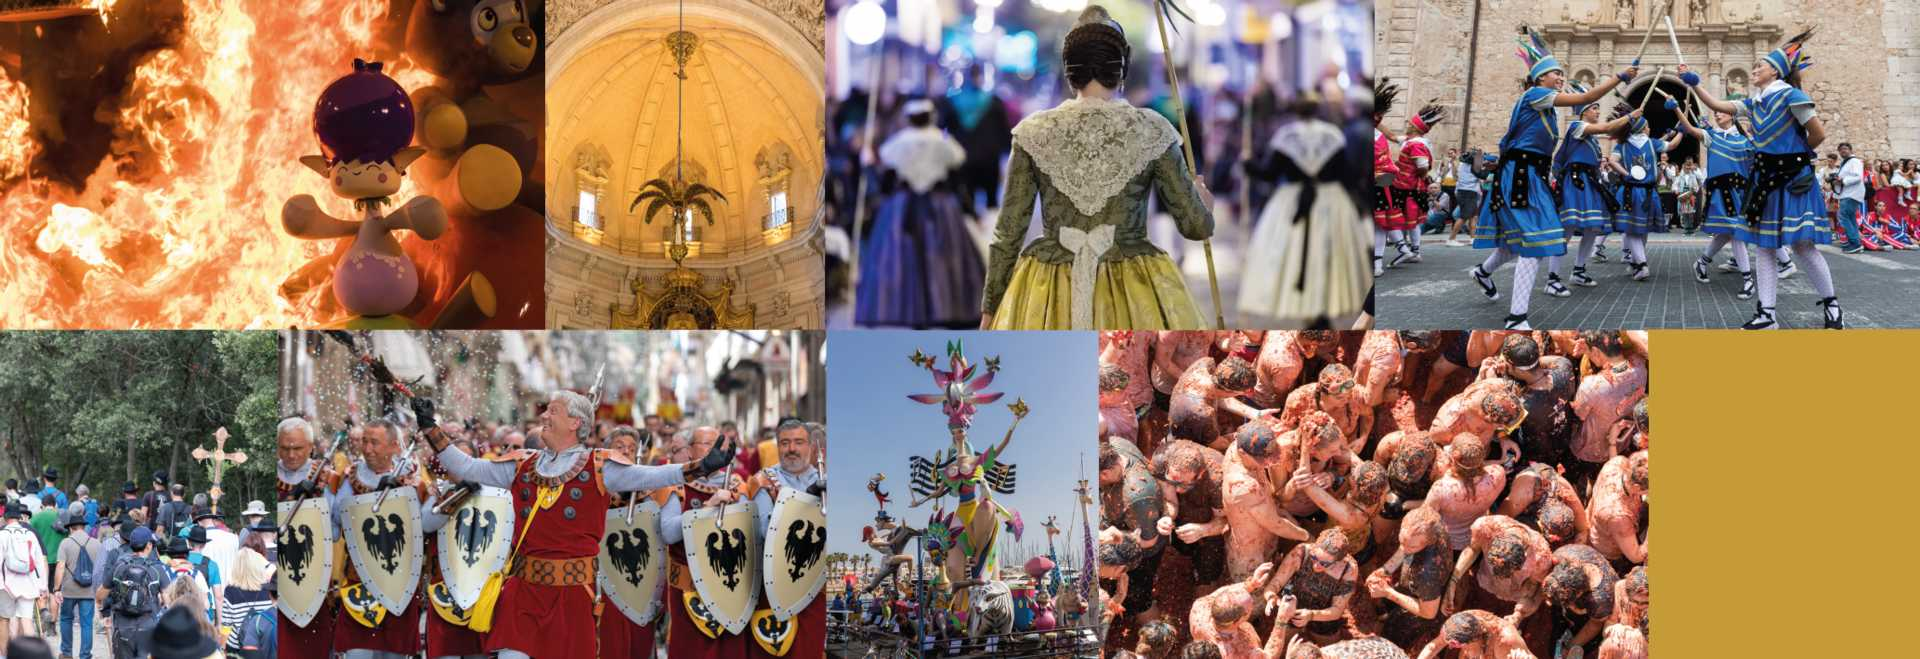 Half year of the Moors and Christians Festival